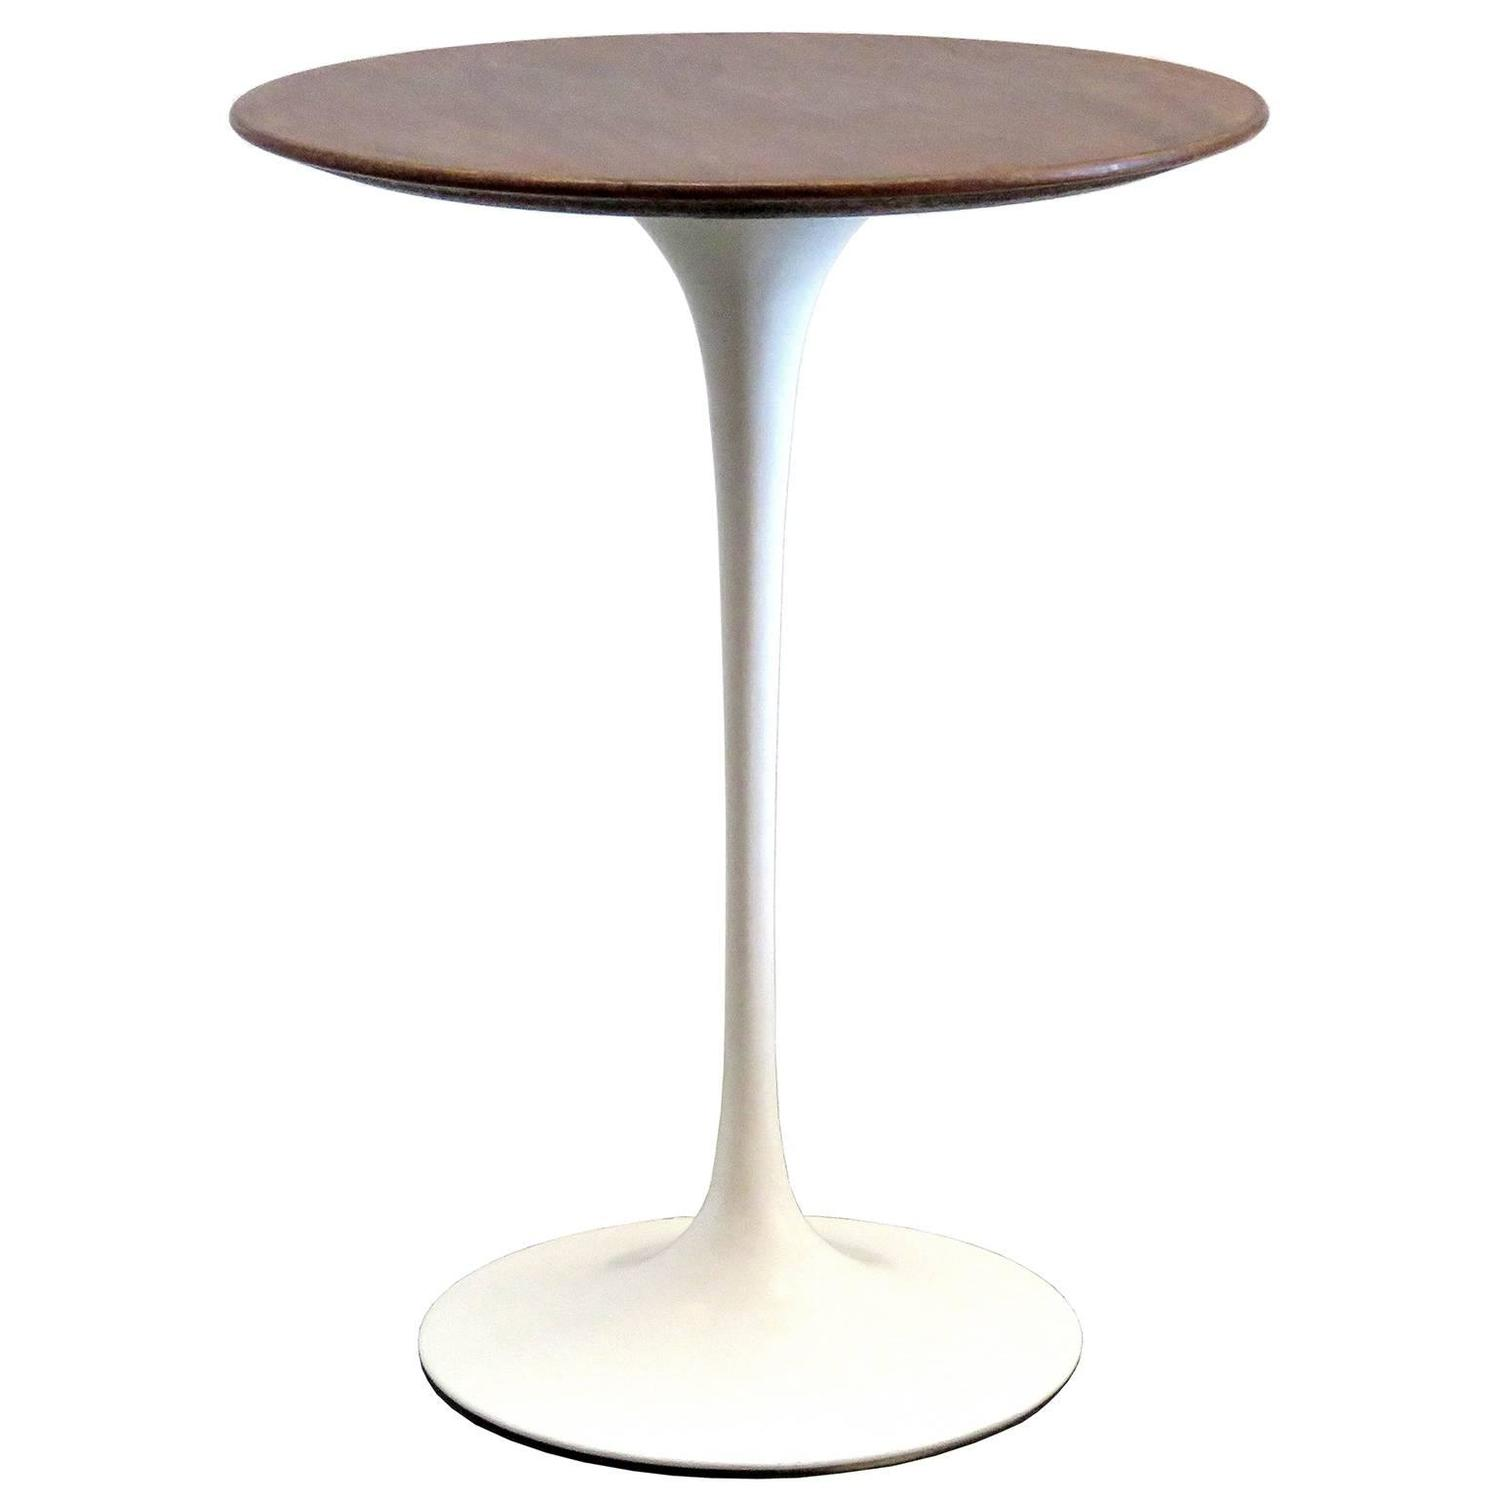 eero saarinen for knoll 1950s walnut tulip table at 1stdibs. Black Bedroom Furniture Sets. Home Design Ideas